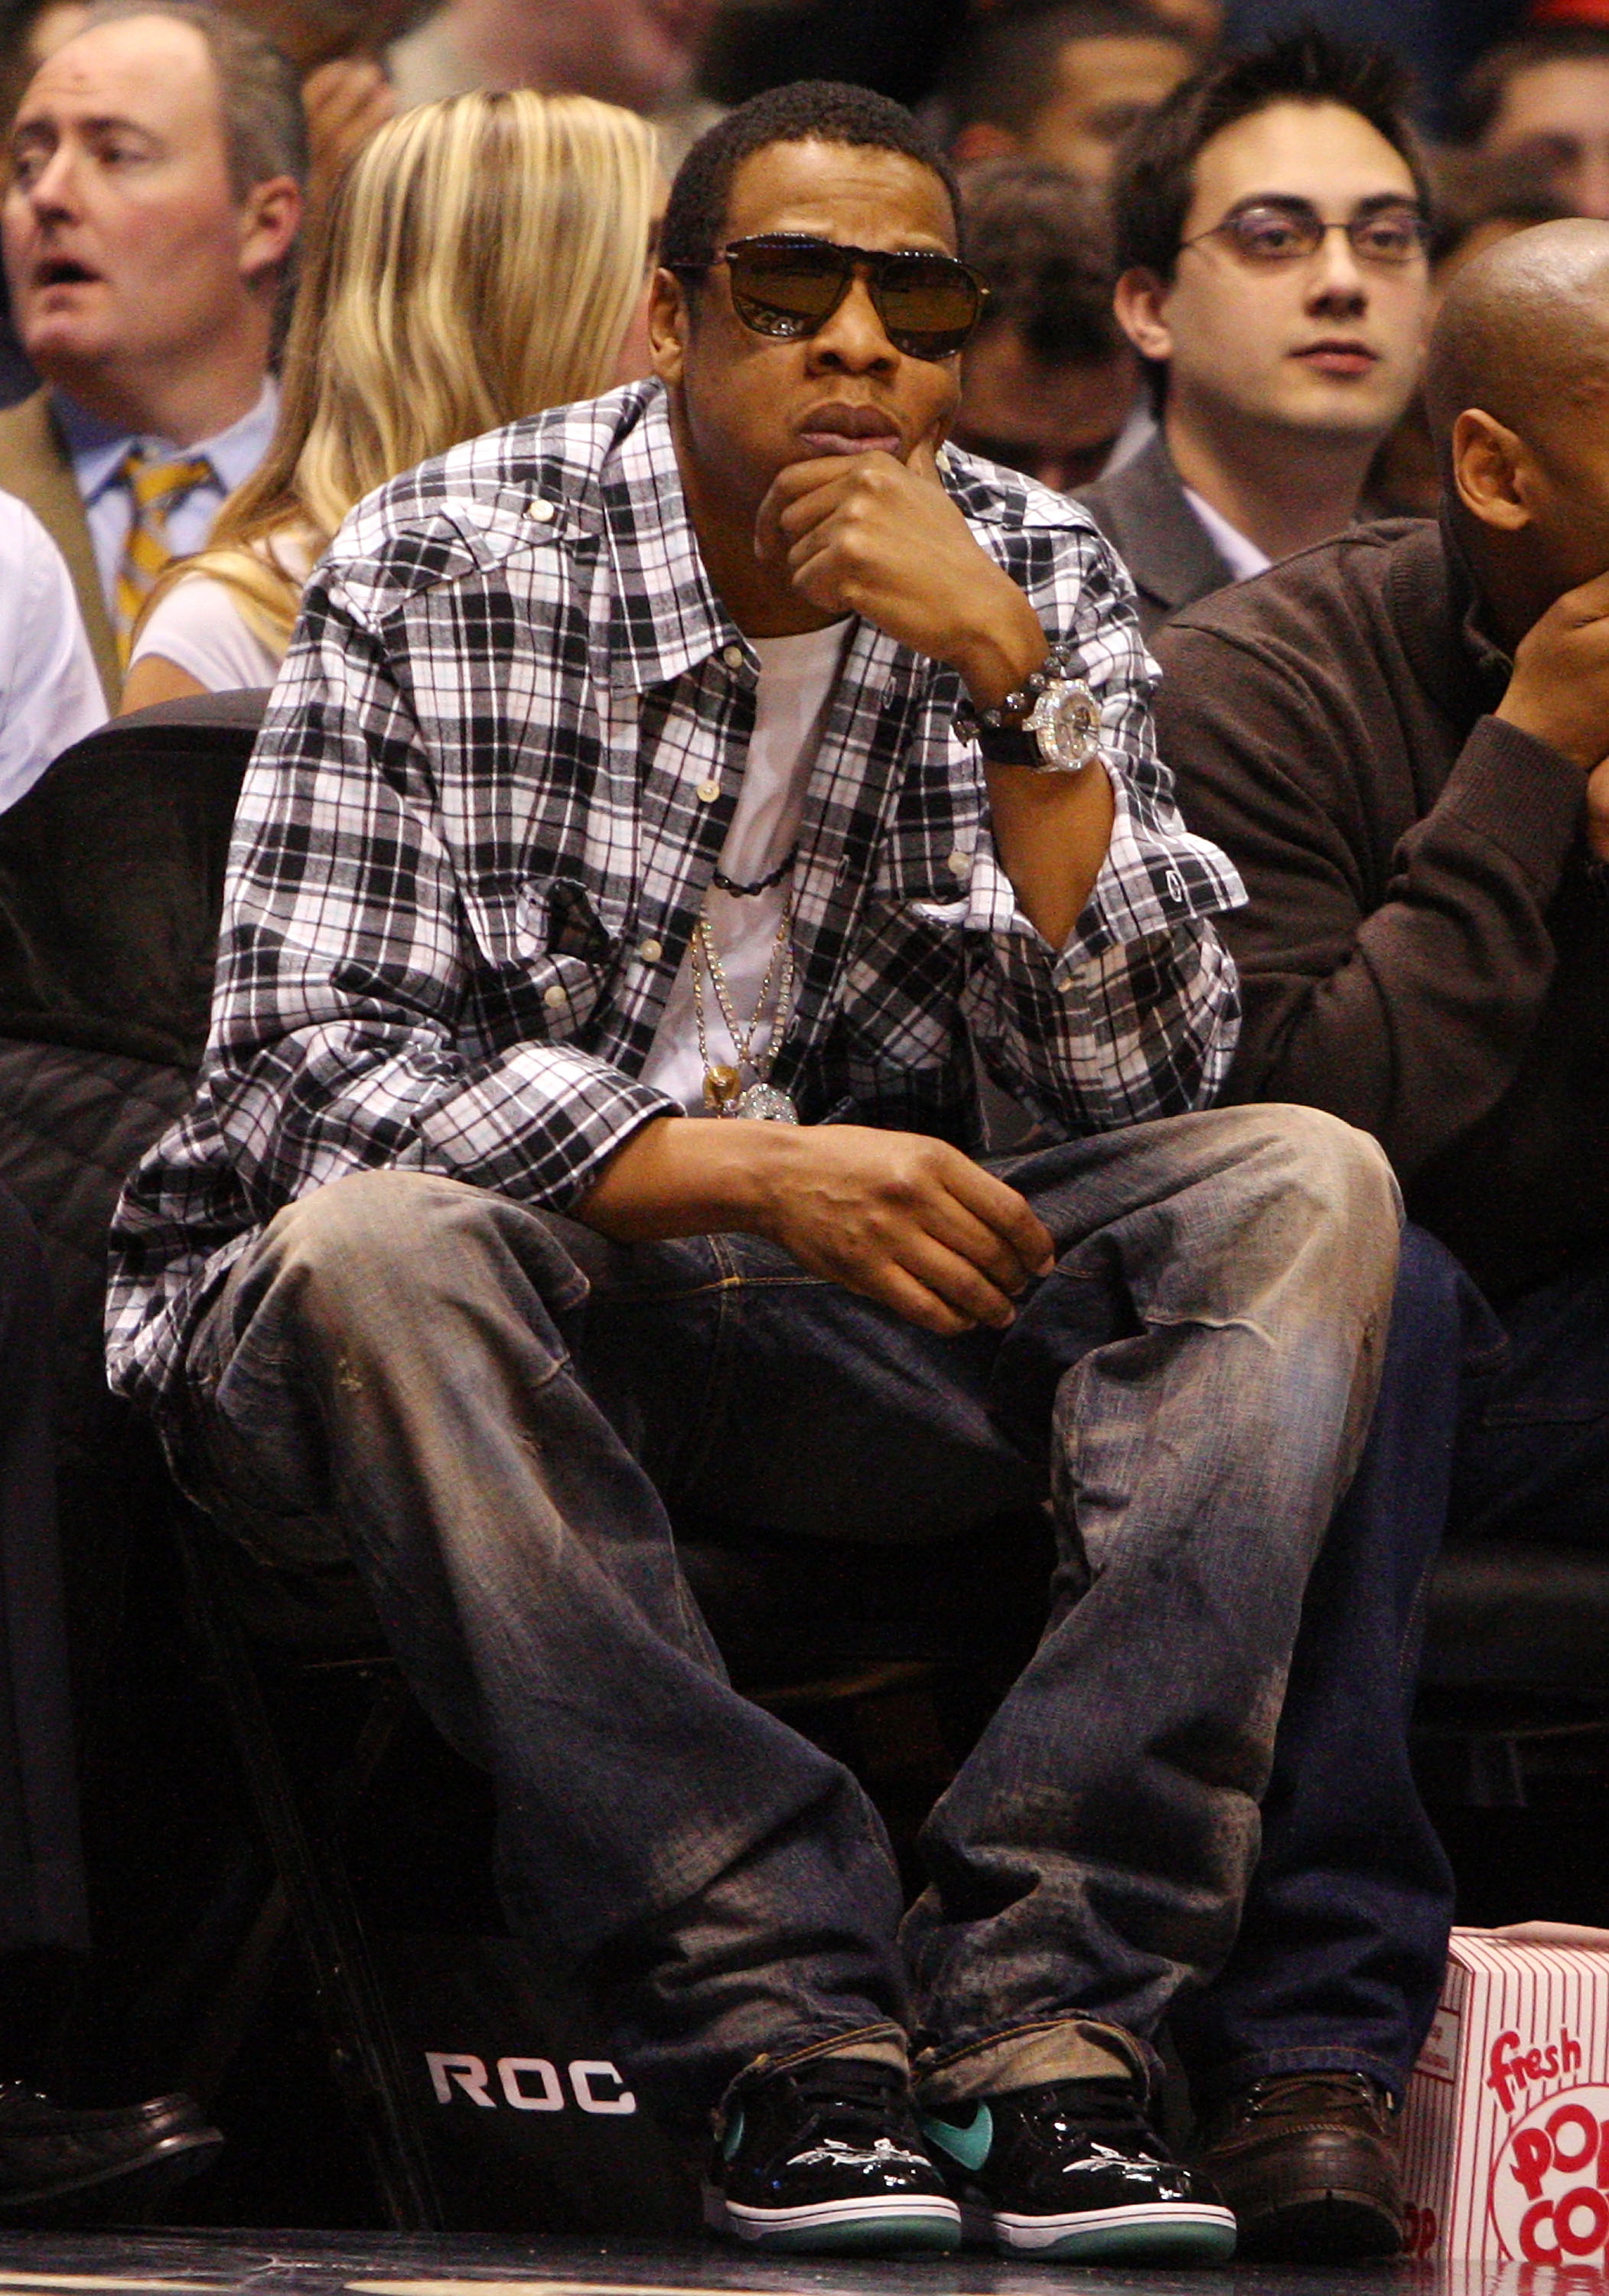 EAST RUTHERFORD, NJ - NOVEMBER 18:  Recording artist and partial owner of the New Jersey Nets Jay-Z looks on as the New Jersey Nets play the Cleveland Cavaliers at the Izod Center on November 18, 2008 in East Rutherford, New Jersey. NOTE TO USER: User exp